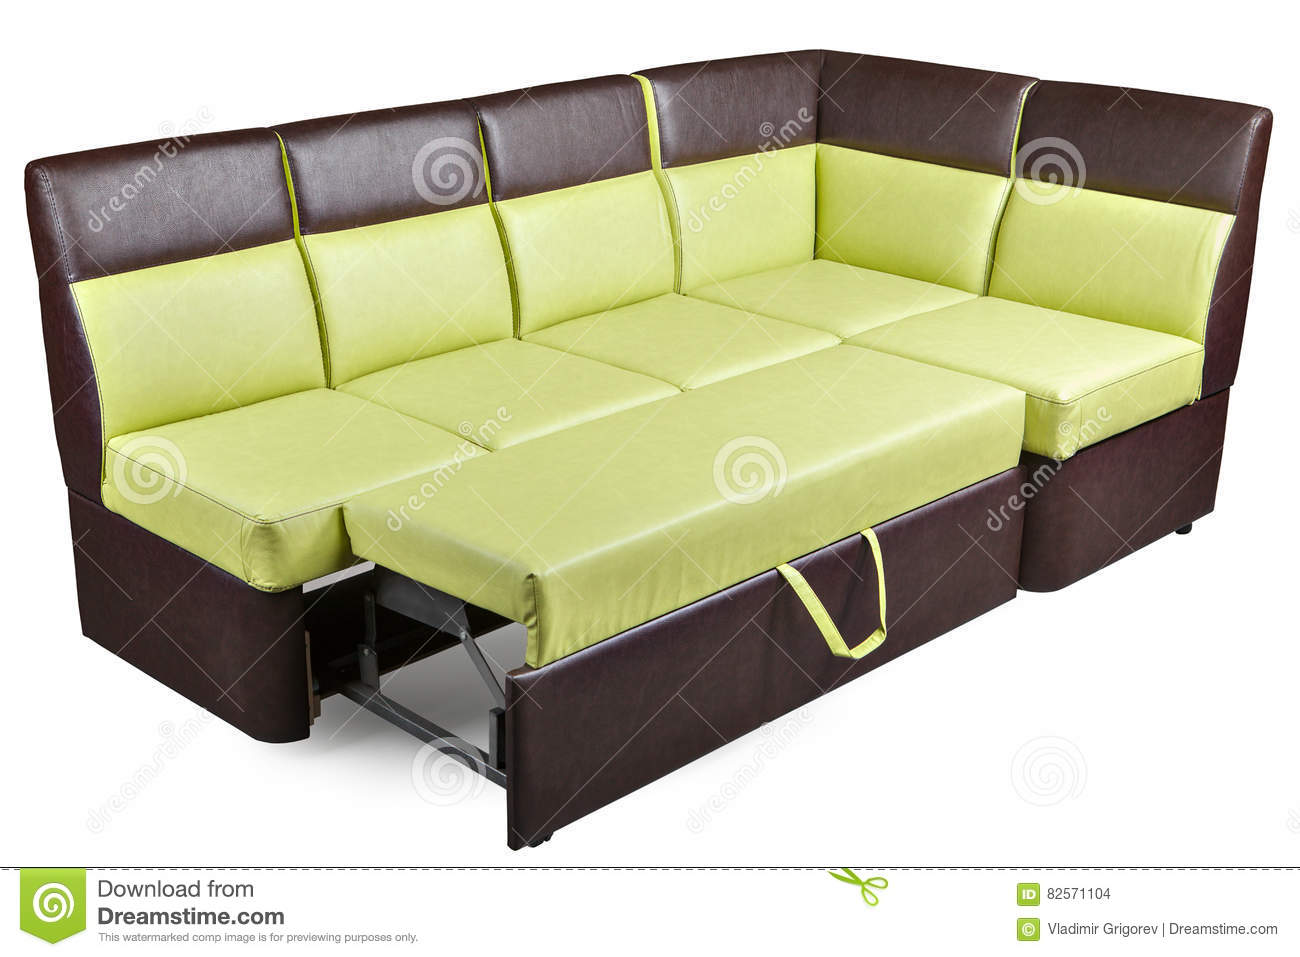 sleeper sofa leather white wrap modern decomposed sectional brown and ...